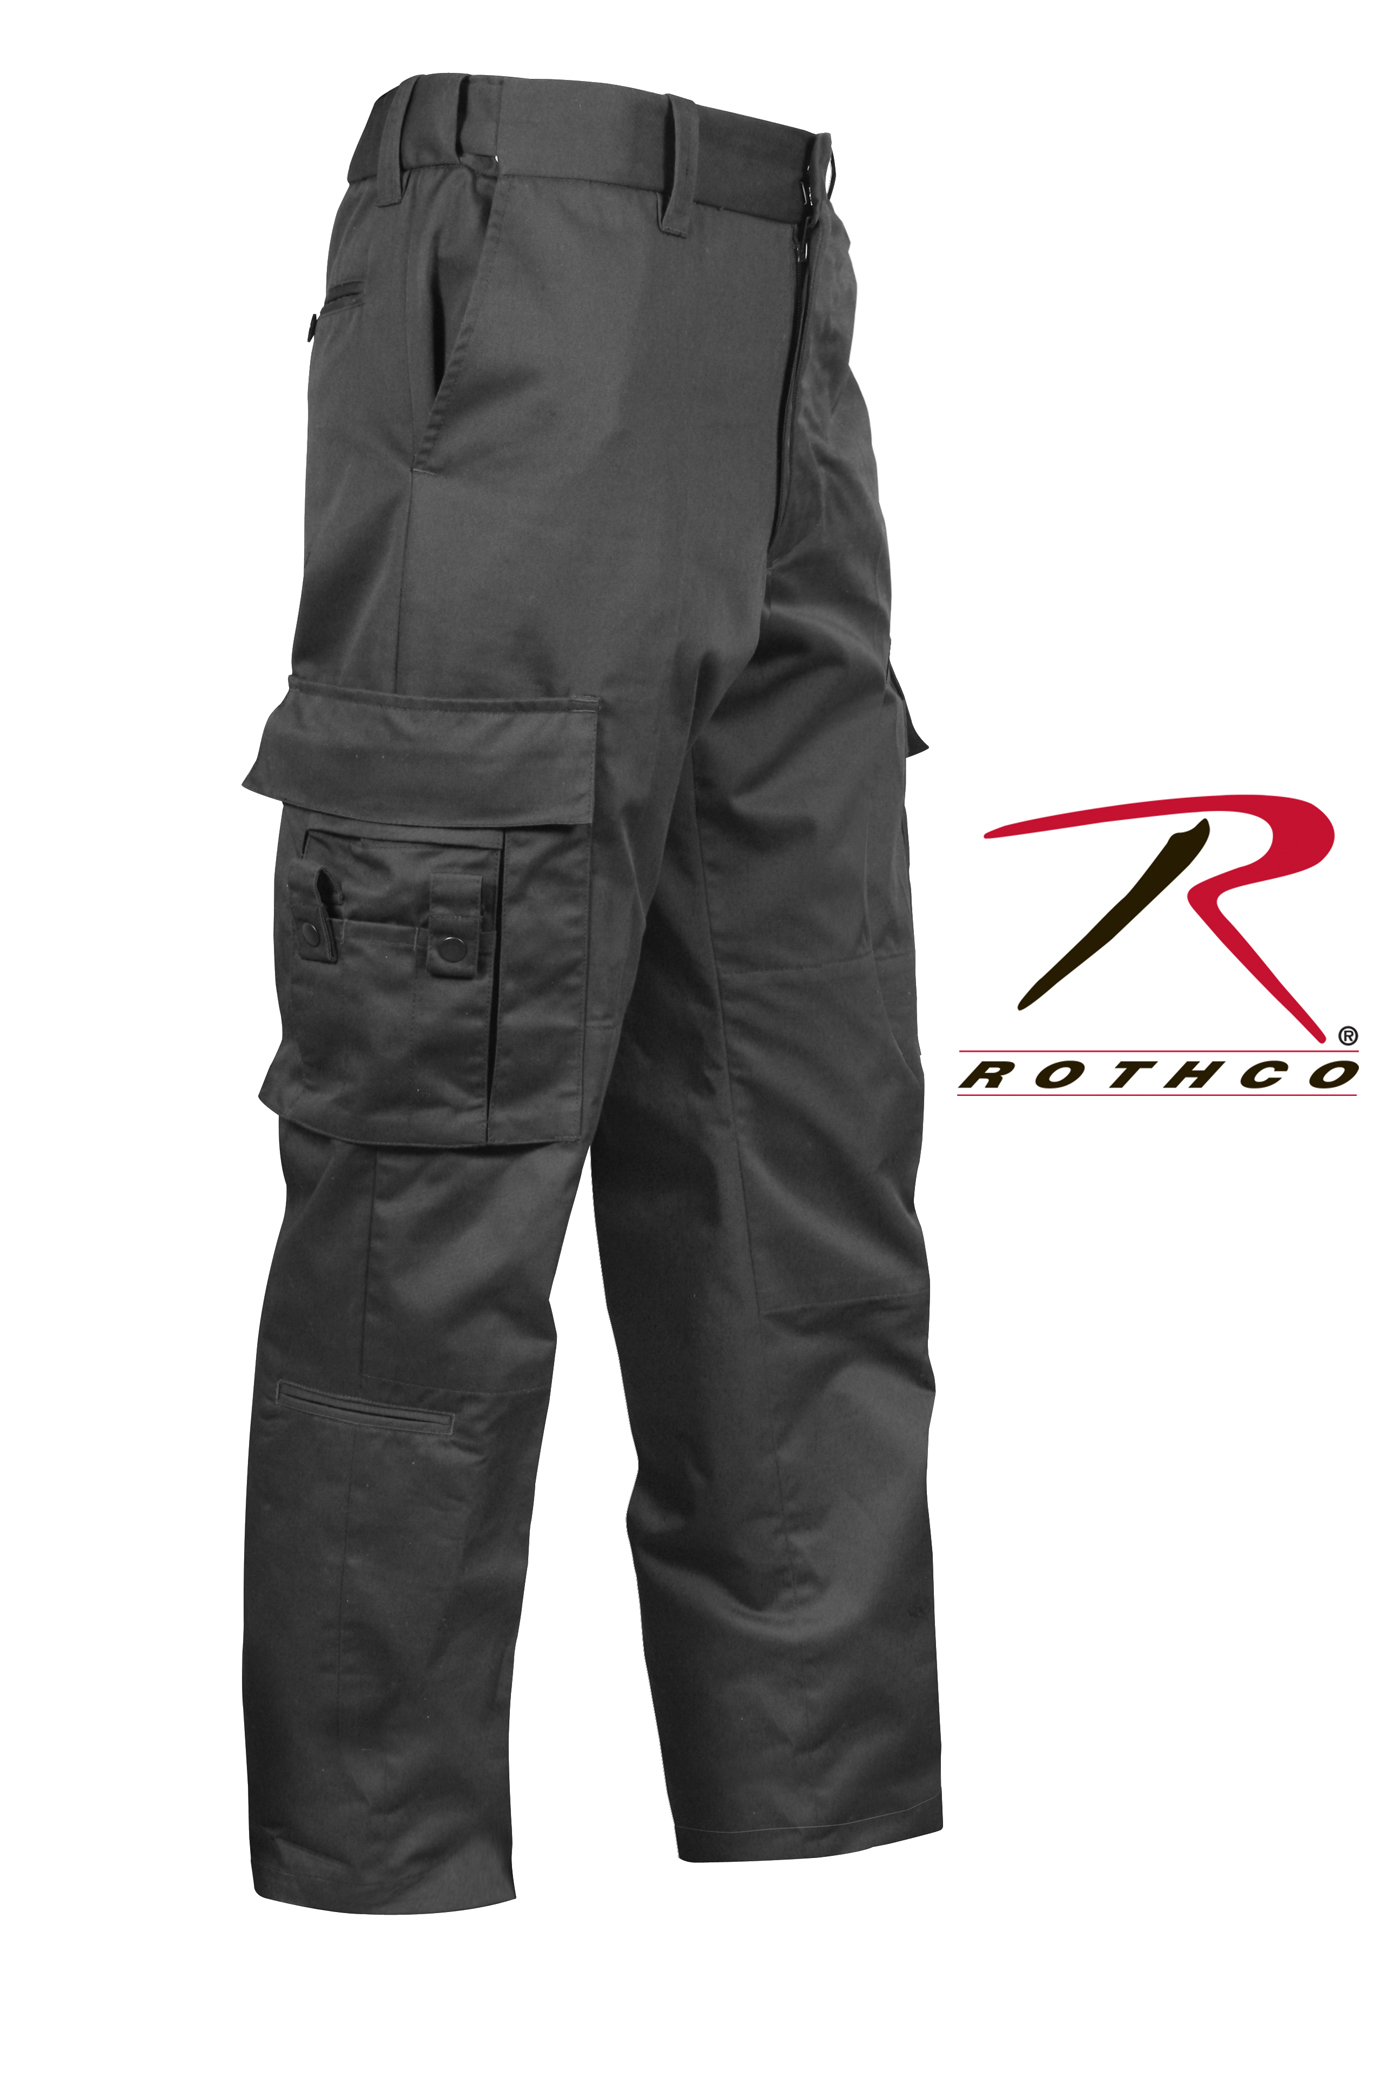 7823 - Ultra Force E.M.T. Pants XS-5XL